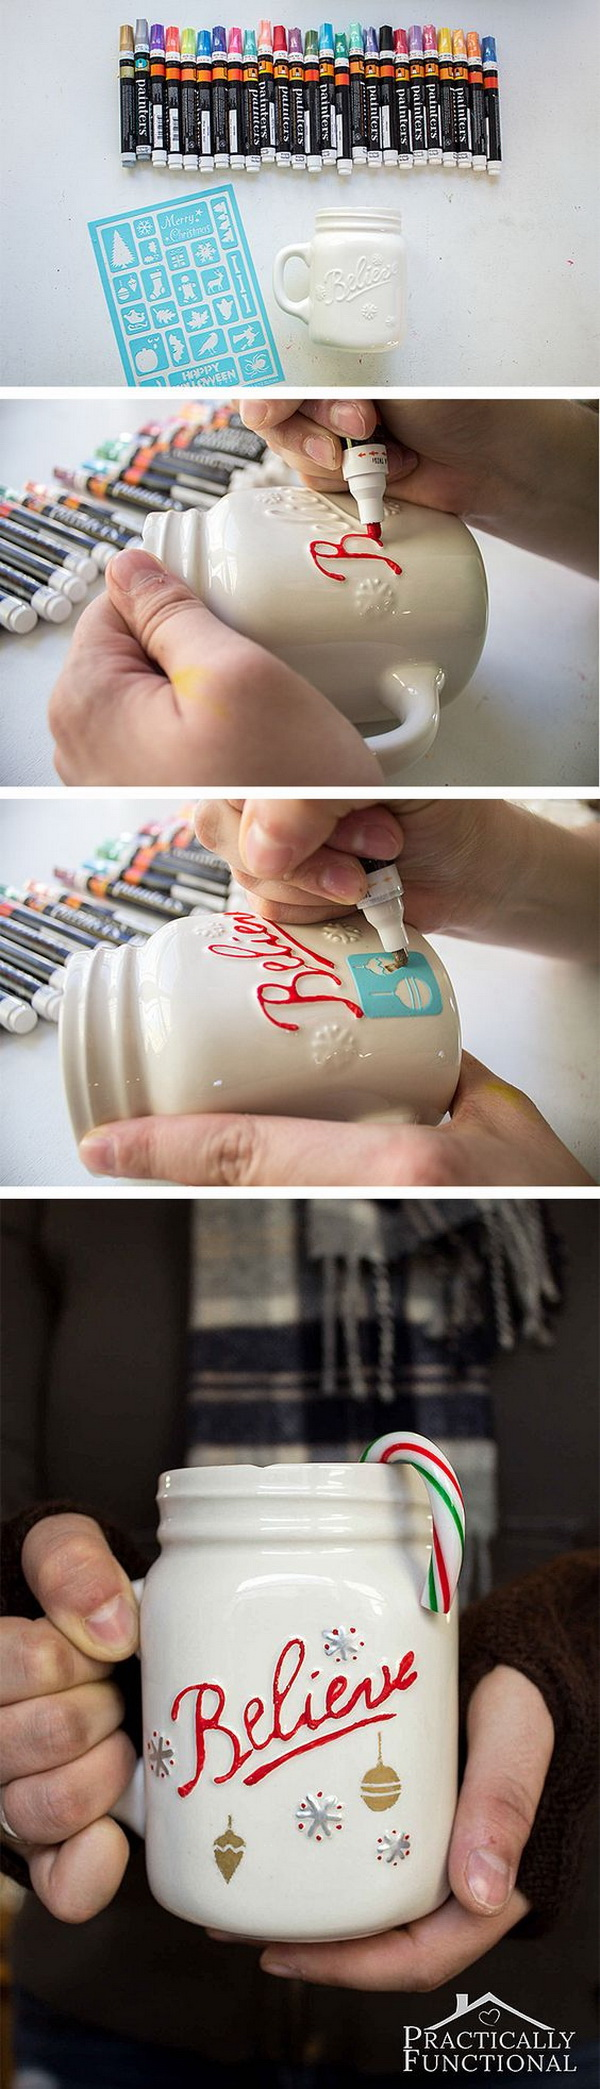 Simple DIY Painted Mug For The Holidays & 30+ Homemade Christmas Gifts Everyone will Love - For Creative Juice